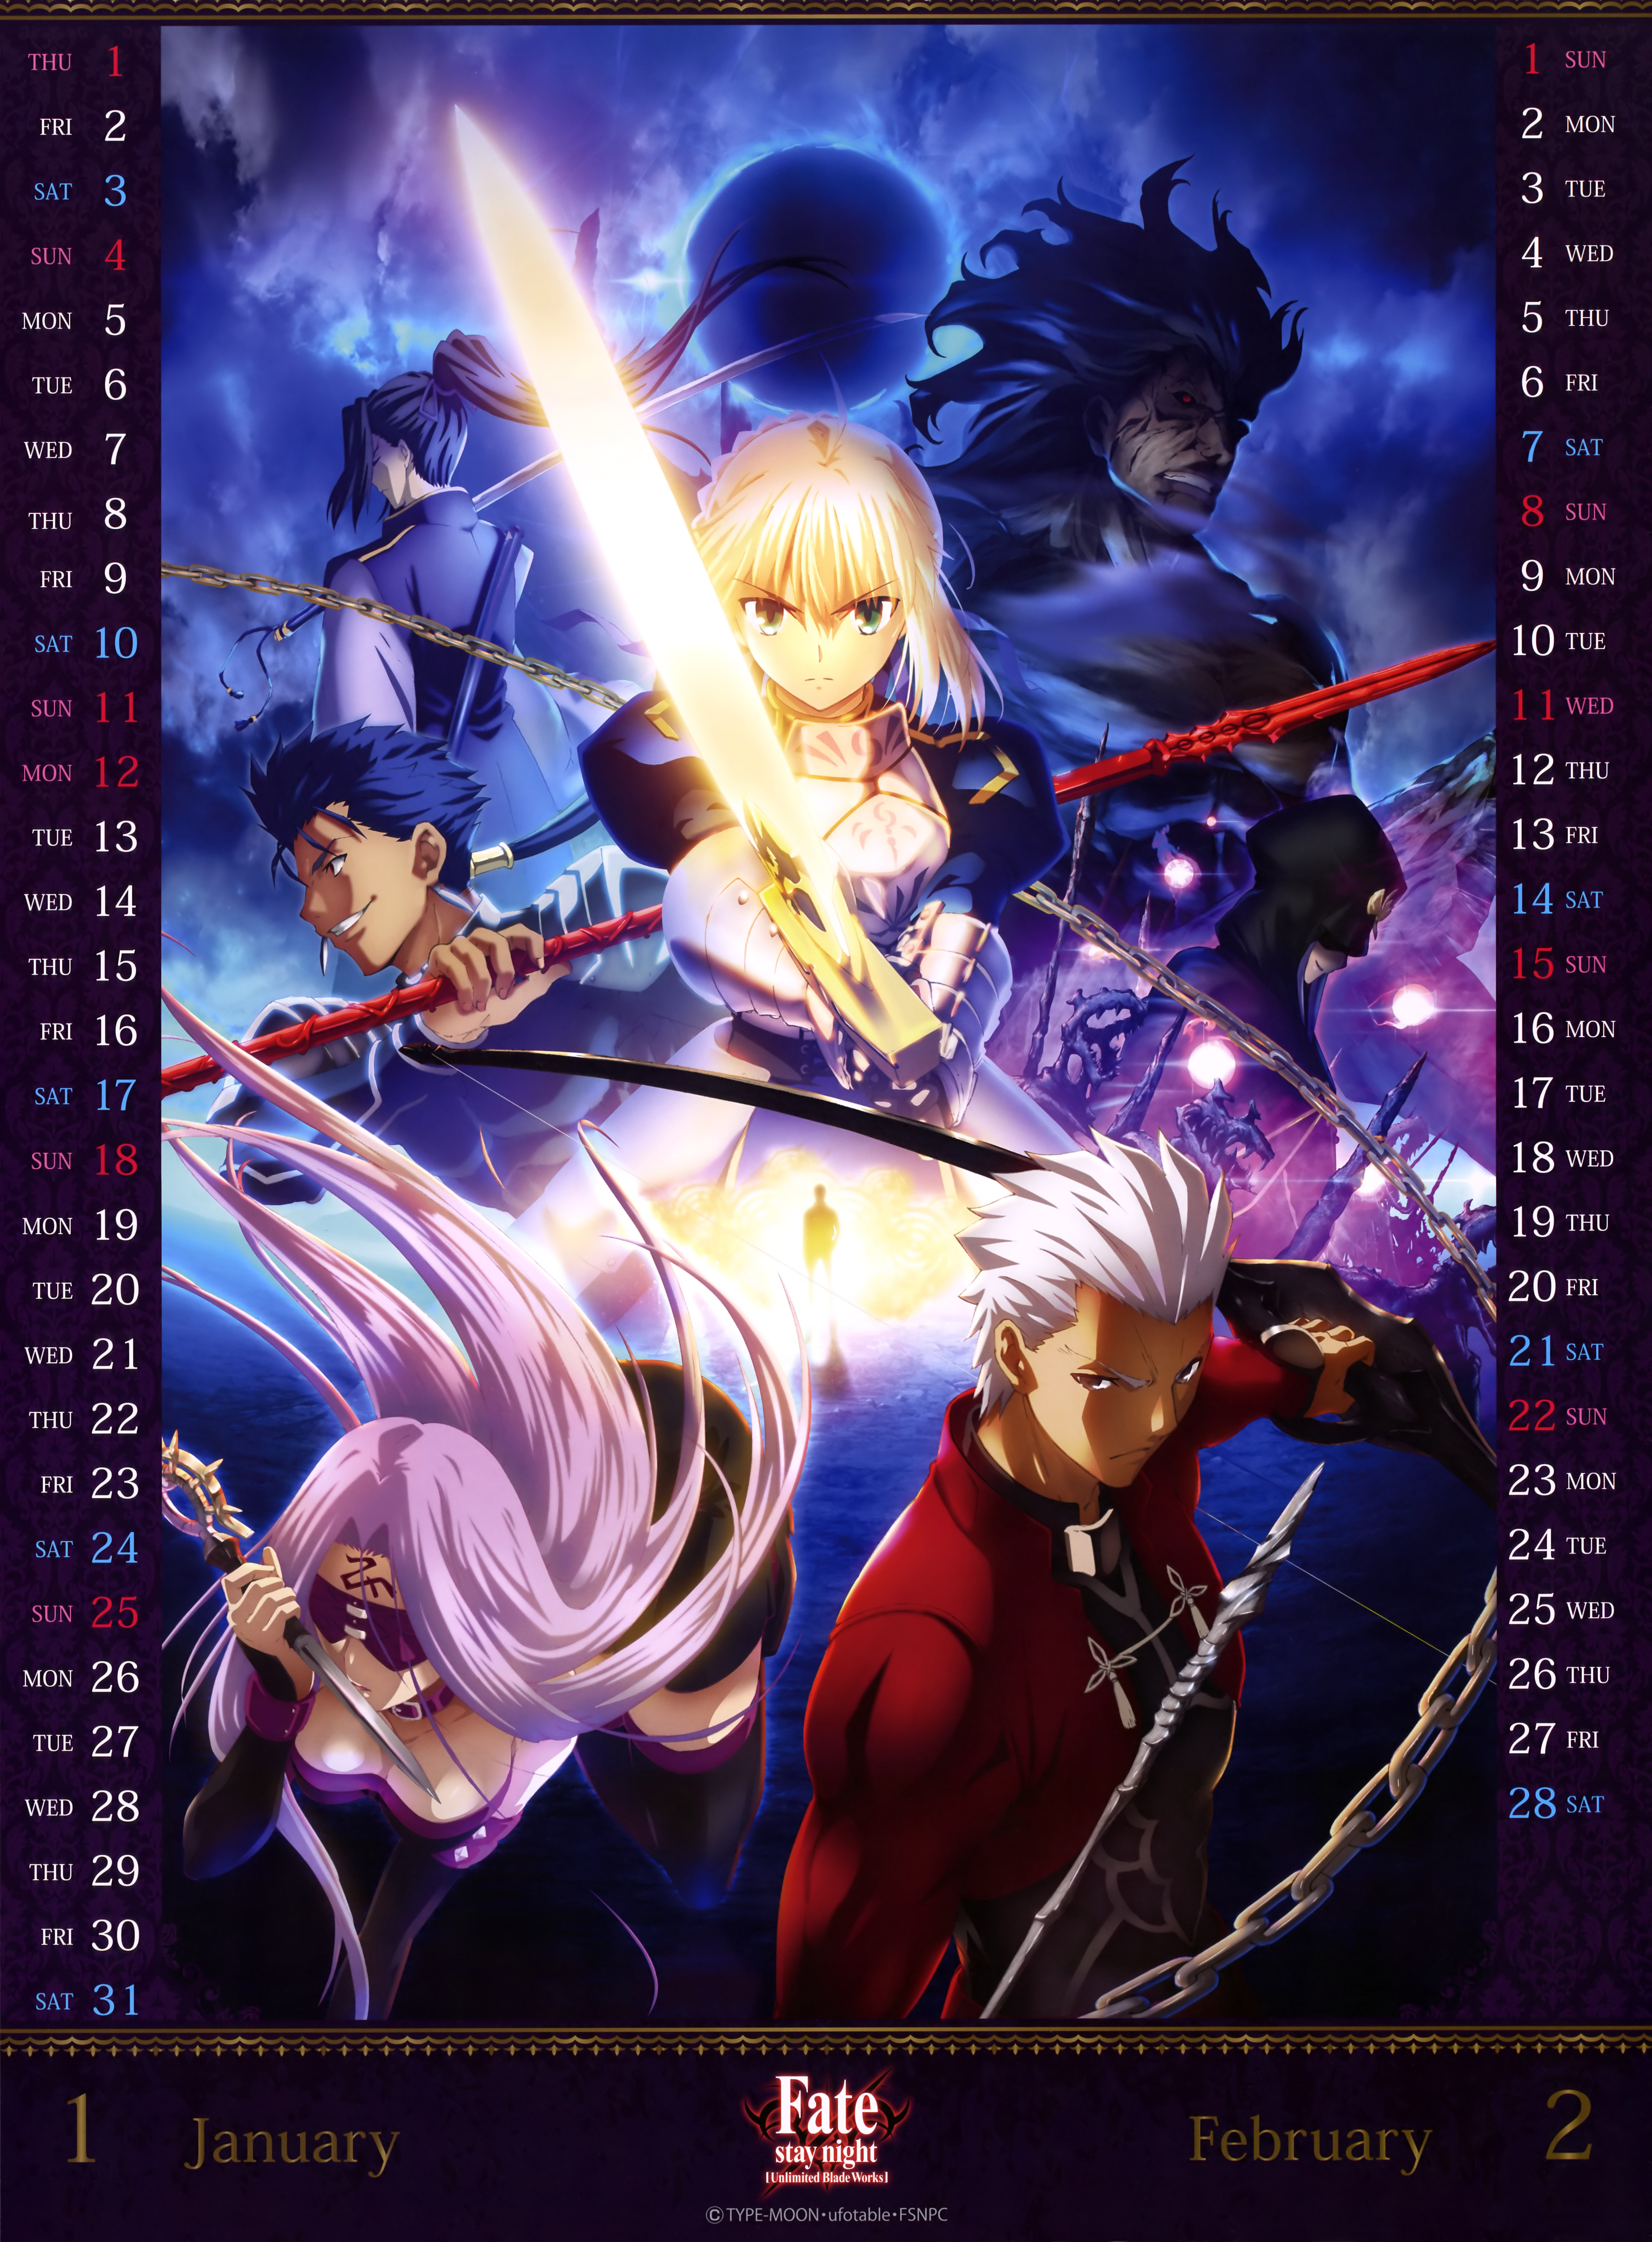 Fate-stay-night--Unlimited-Blade-Works-2015-Anime-Calendar-Image-1